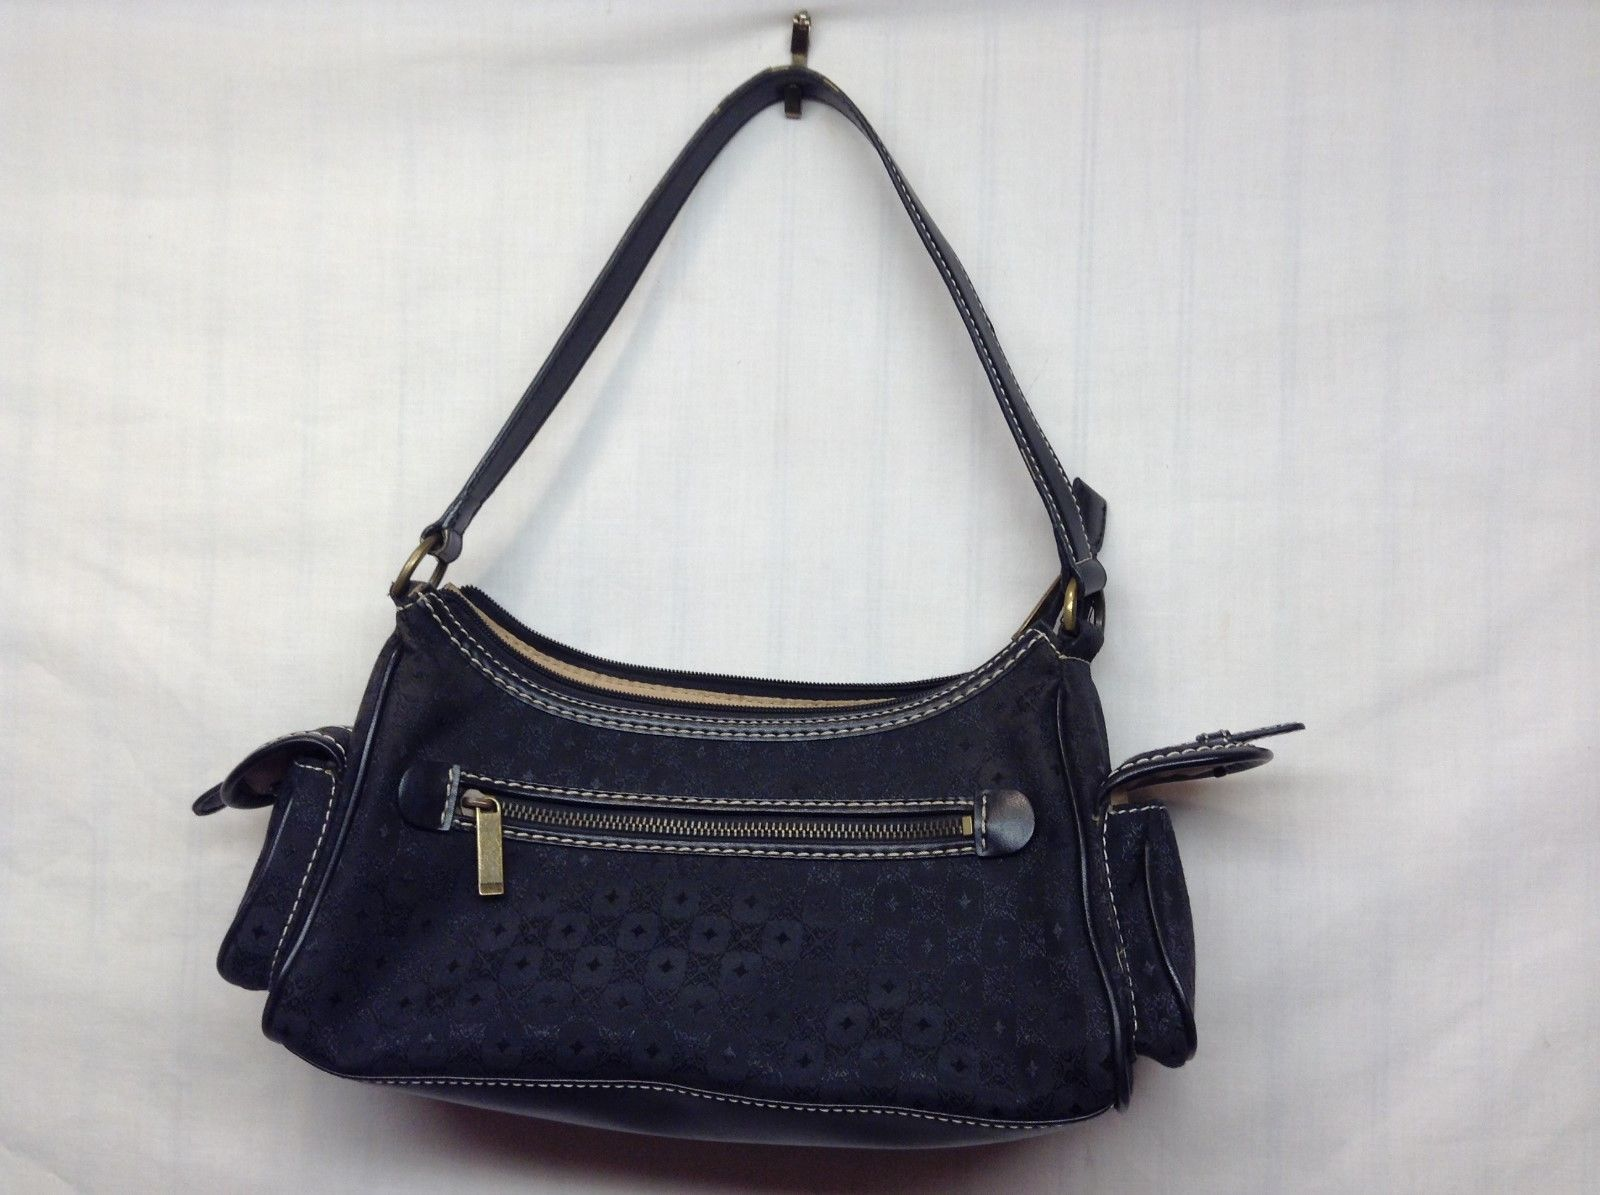 NEW Villager/Liz Claiborne Black Handbag